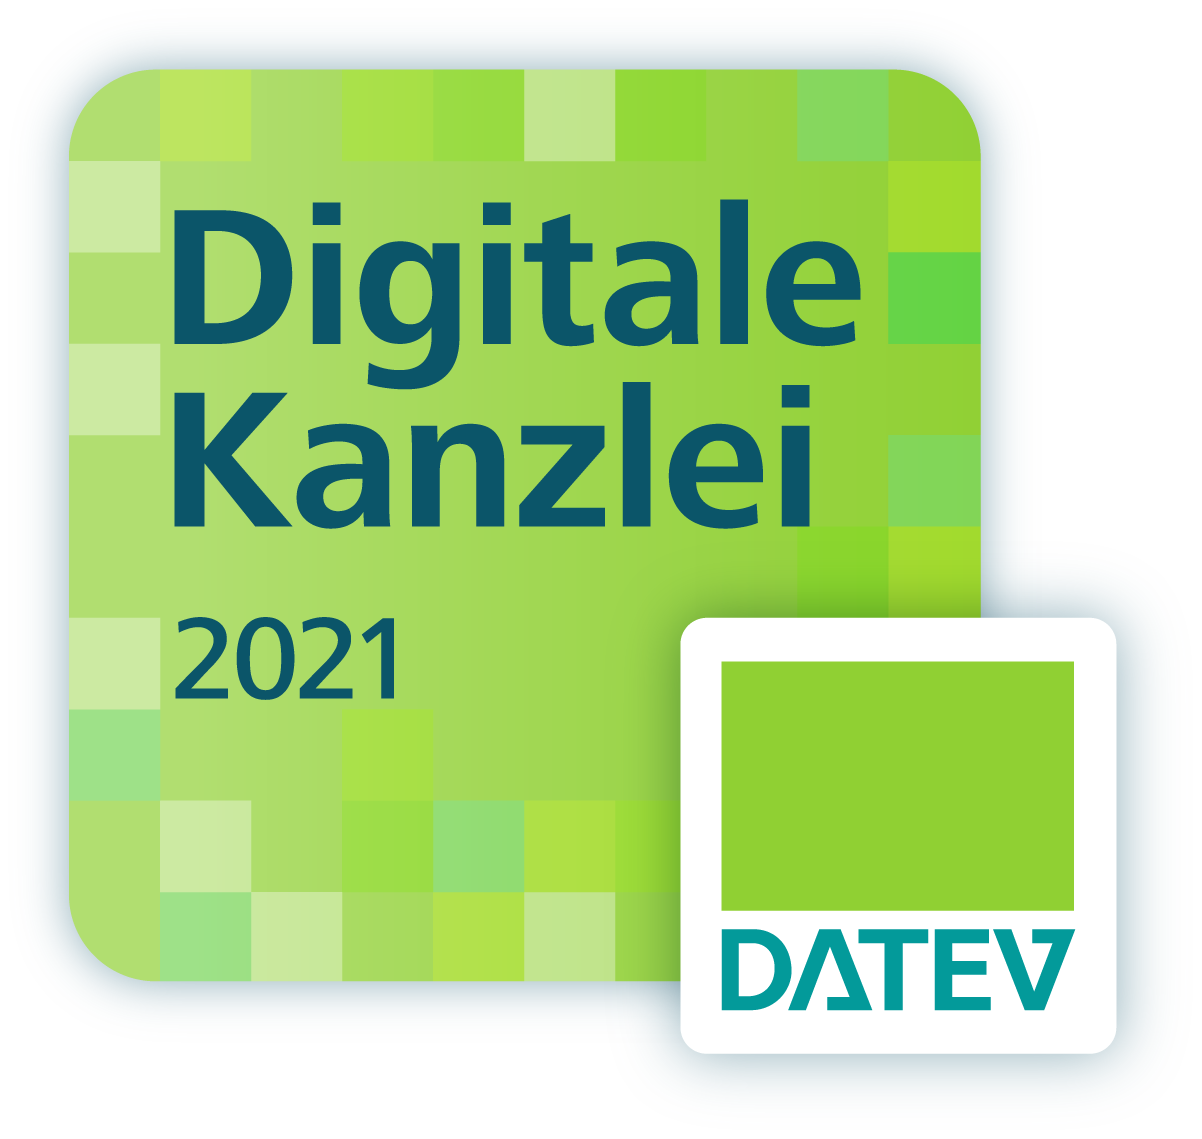 Digitale Kanzlei 2021 DATEV